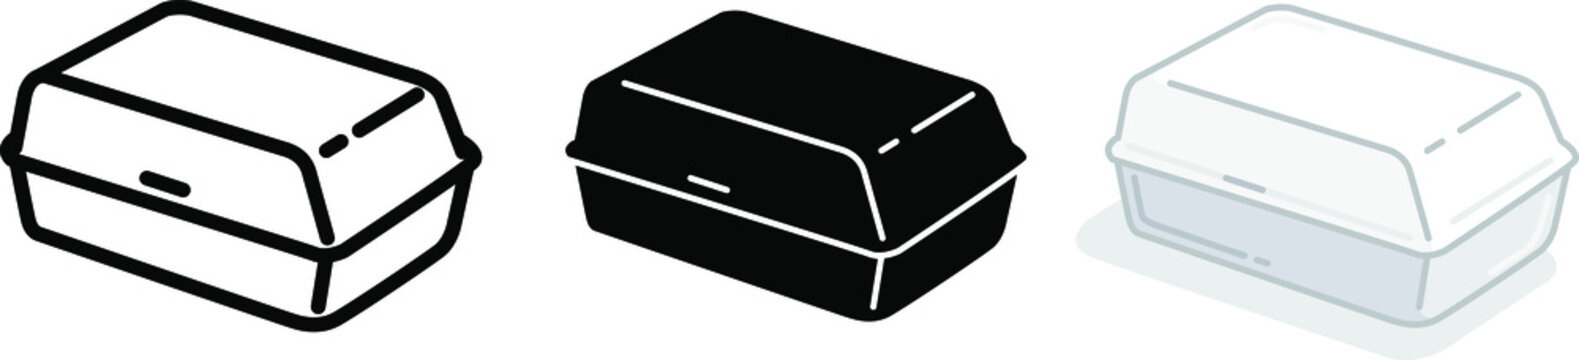 Foam meal box icon